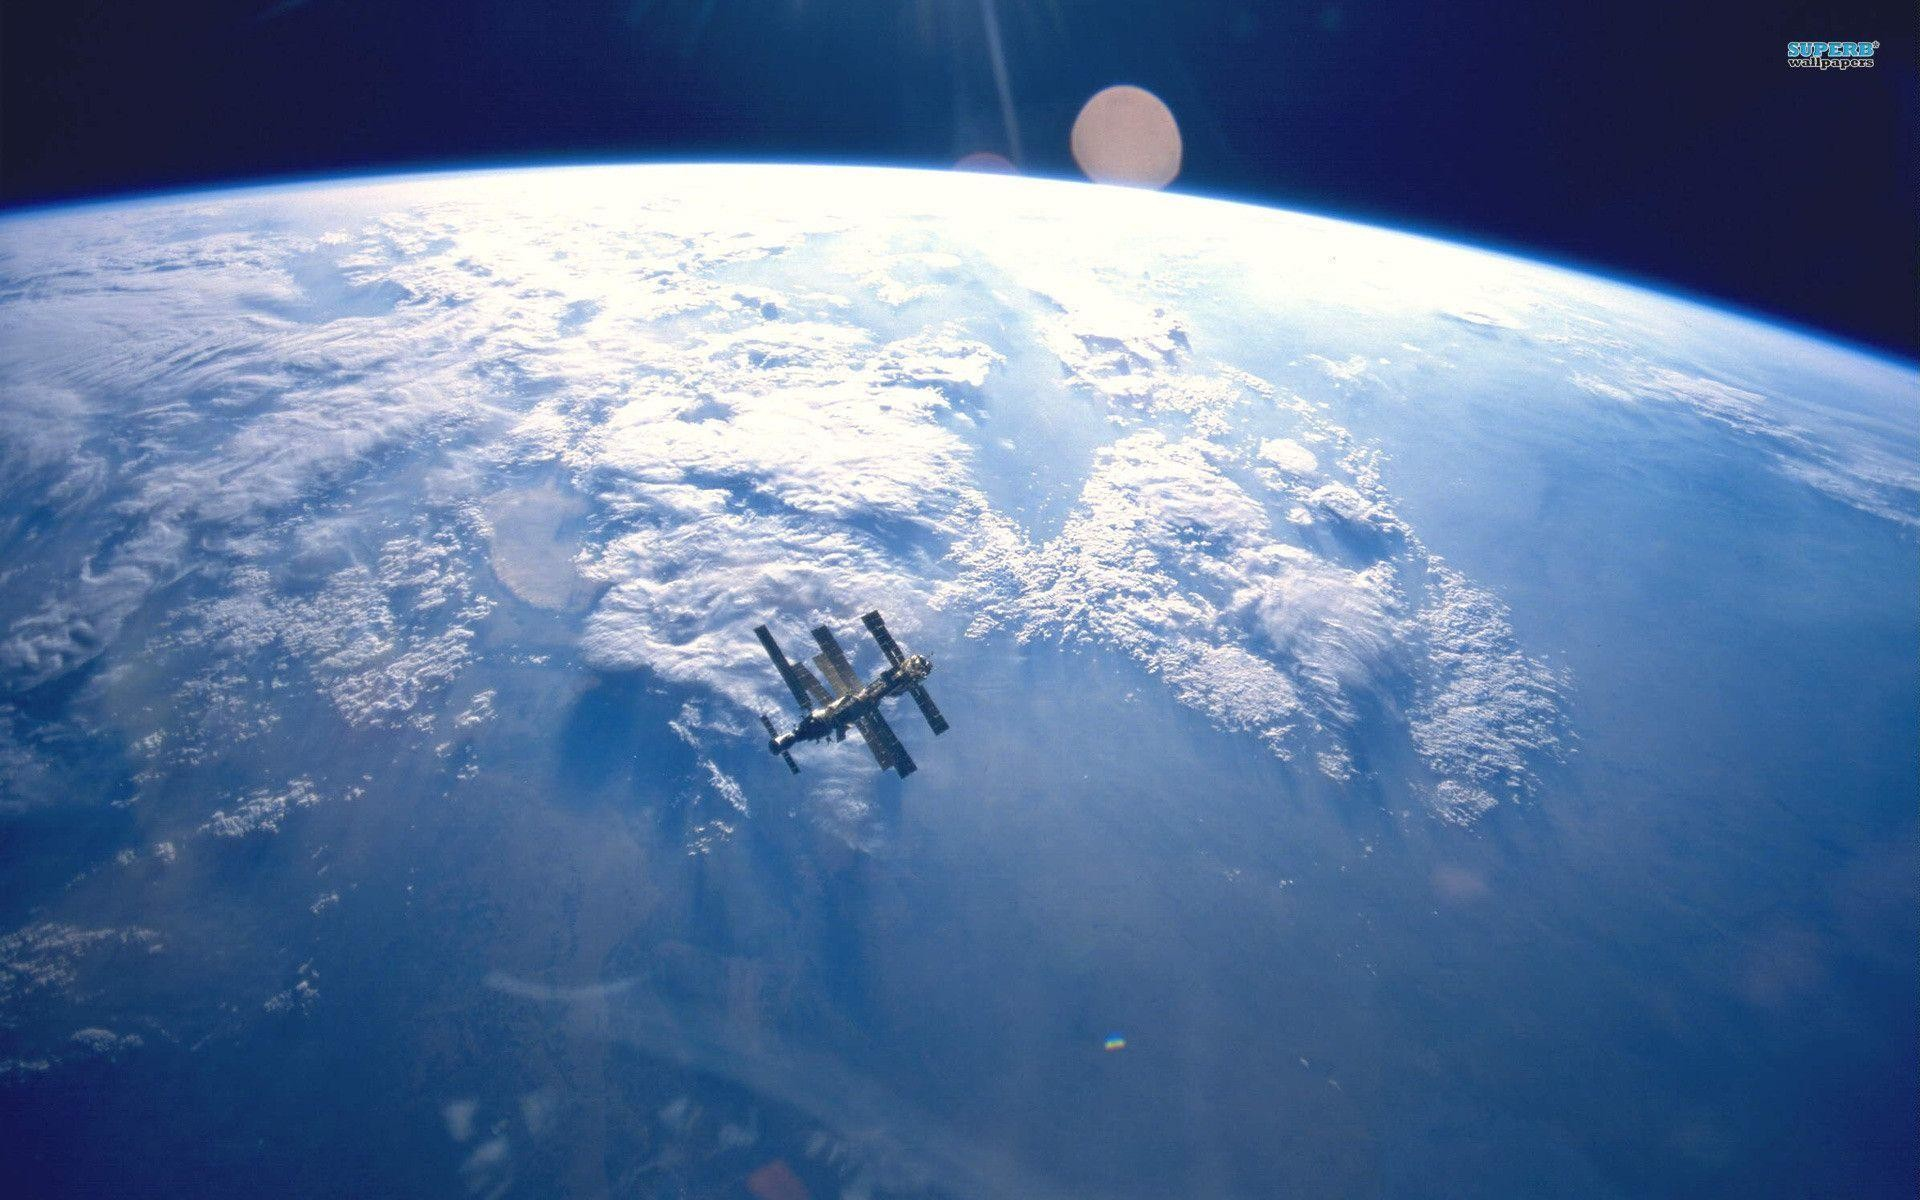 International Space Station wallpaper – Space wallpapers – #10554